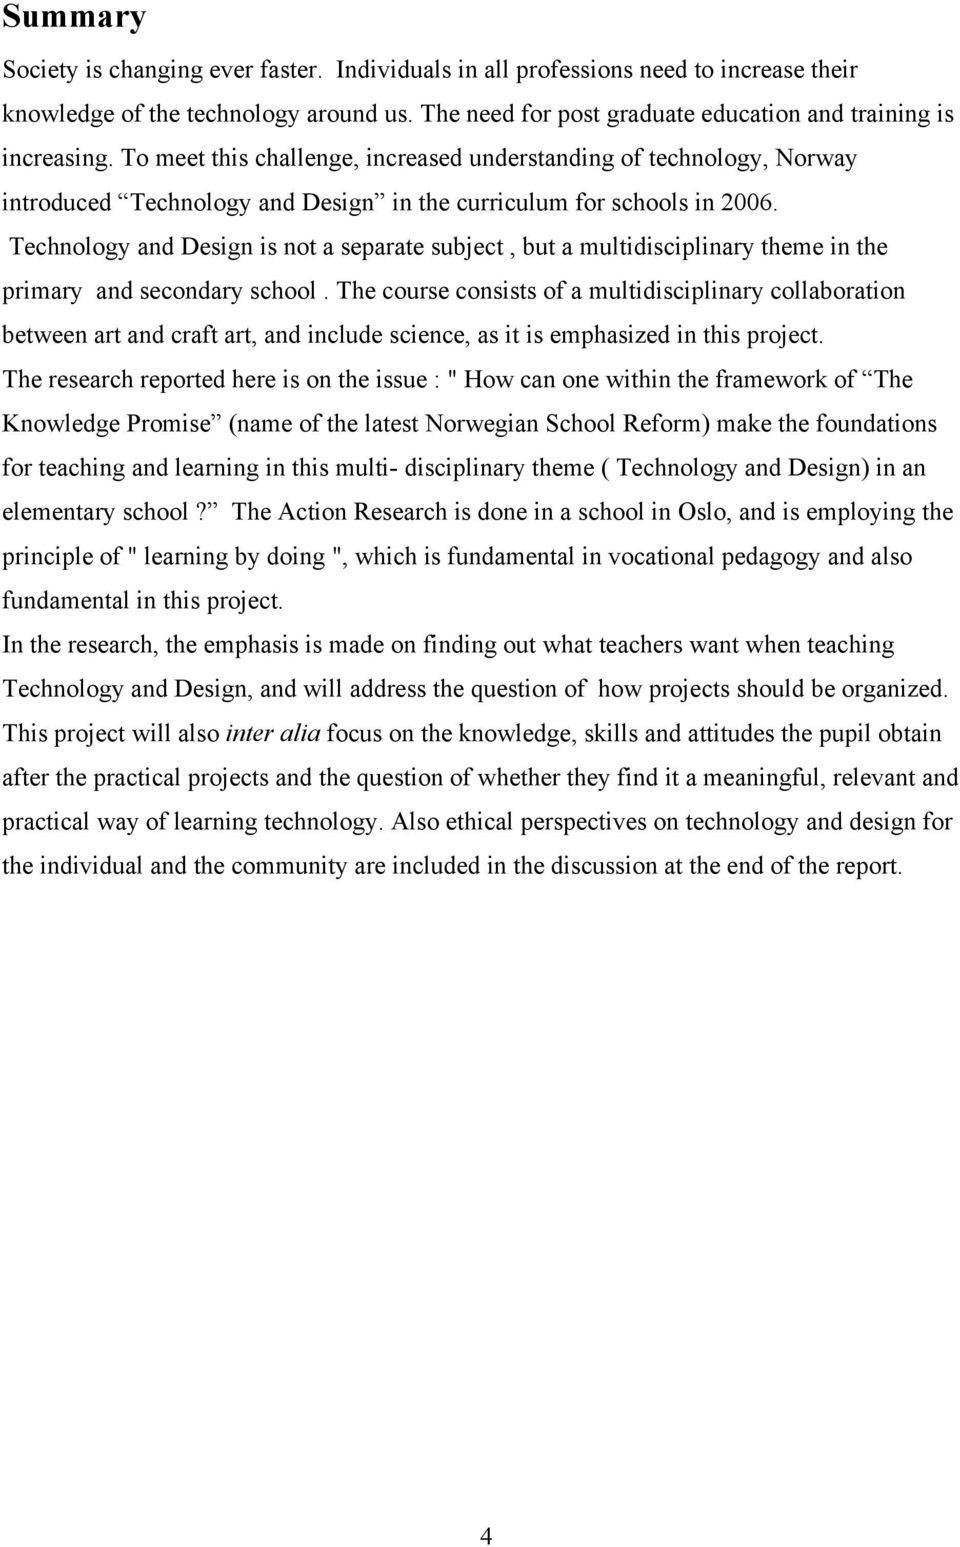 Technology and Design is not a separate subject, but a multidisciplinary theme in the primary and secondary school.